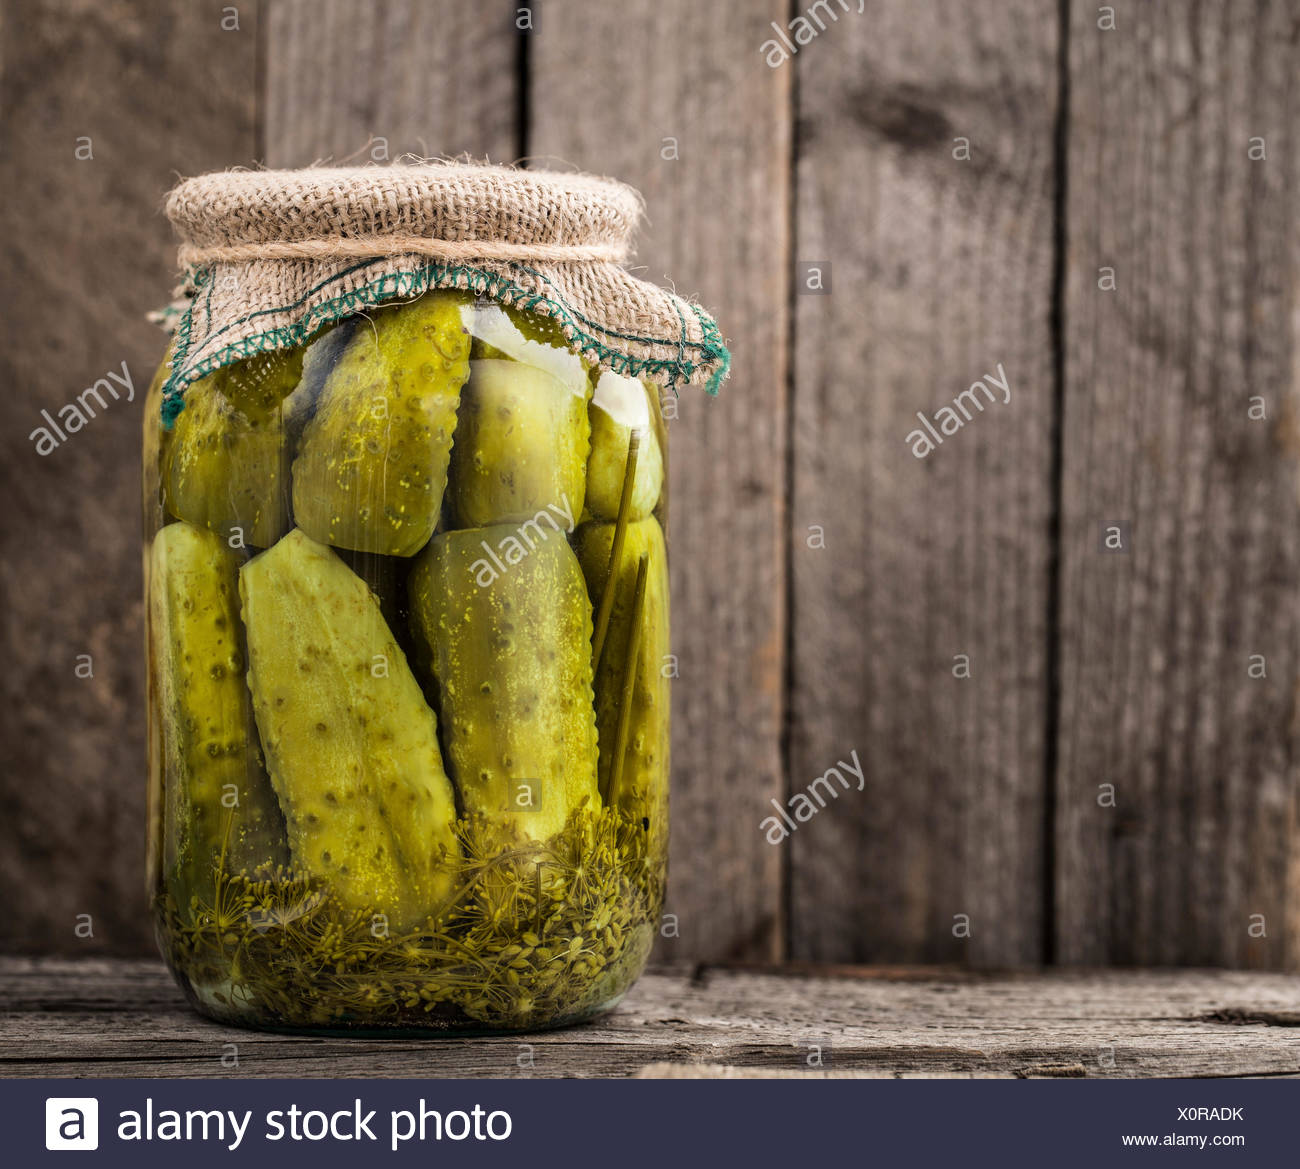 Jar of homemade pickles on a rustic wooden board - Stock Image